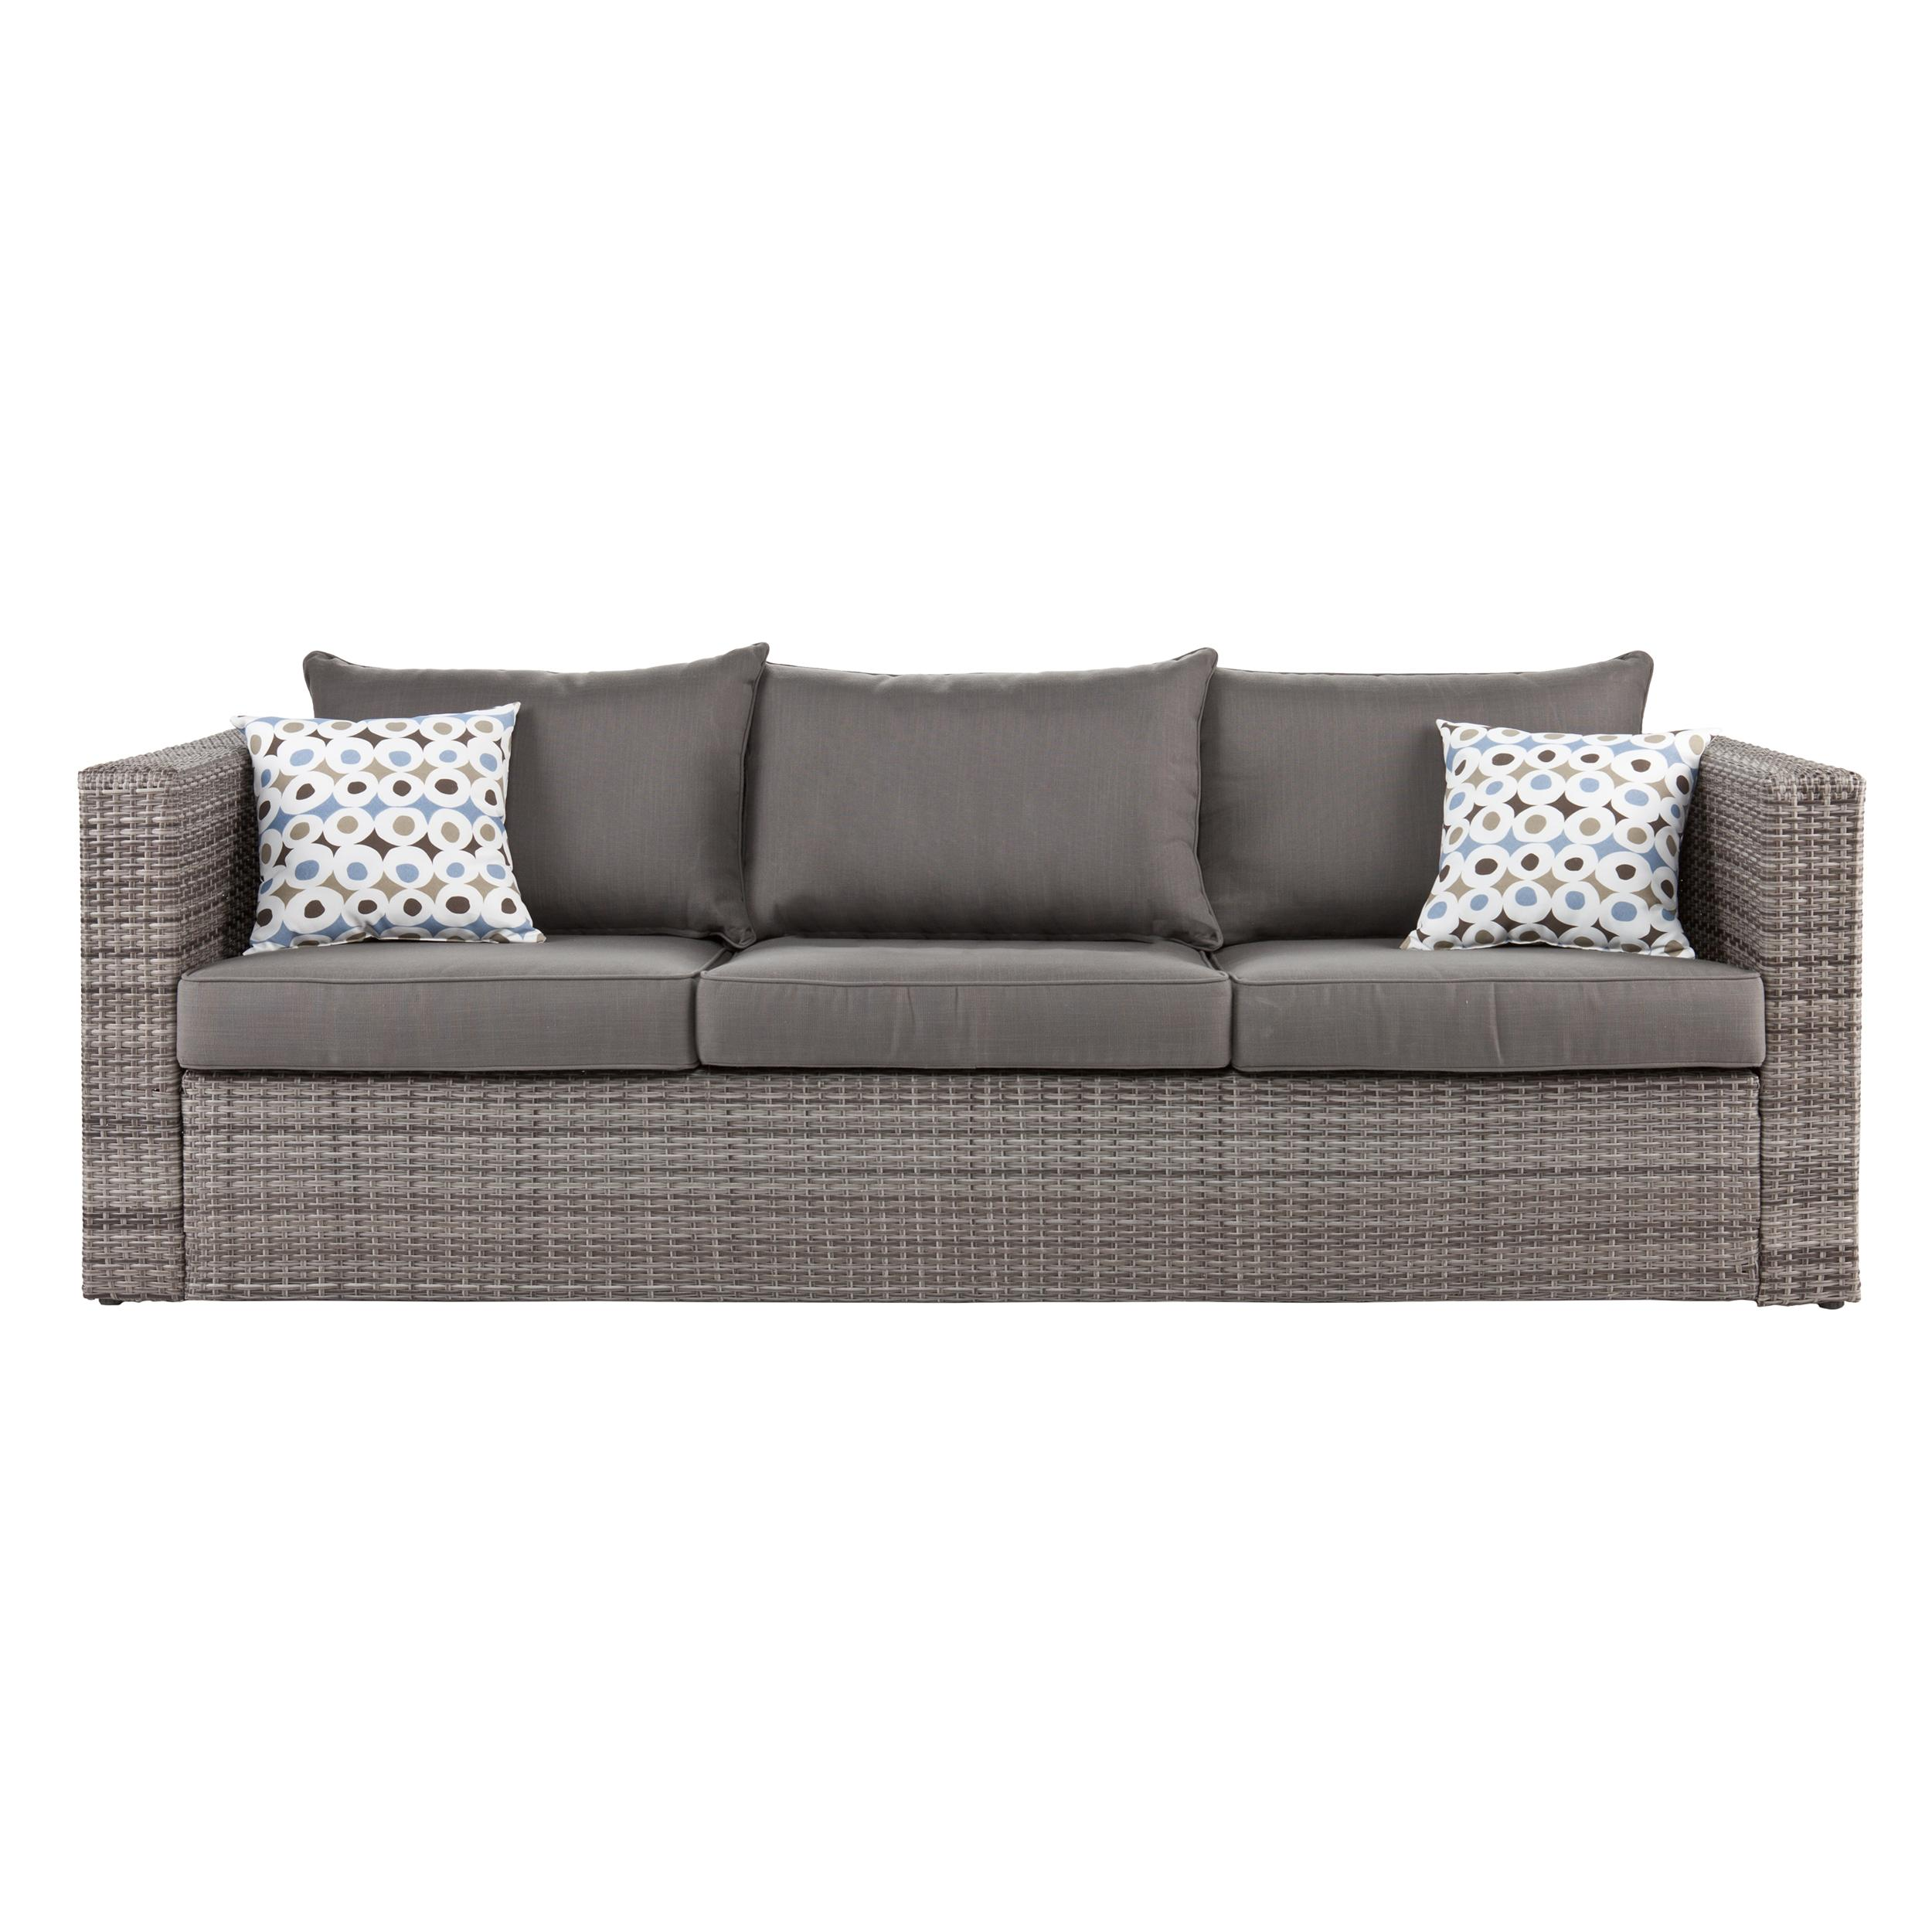 astoria microfiber home product inch overstock deep shipping seating couch couches sofa garden serta today seated free